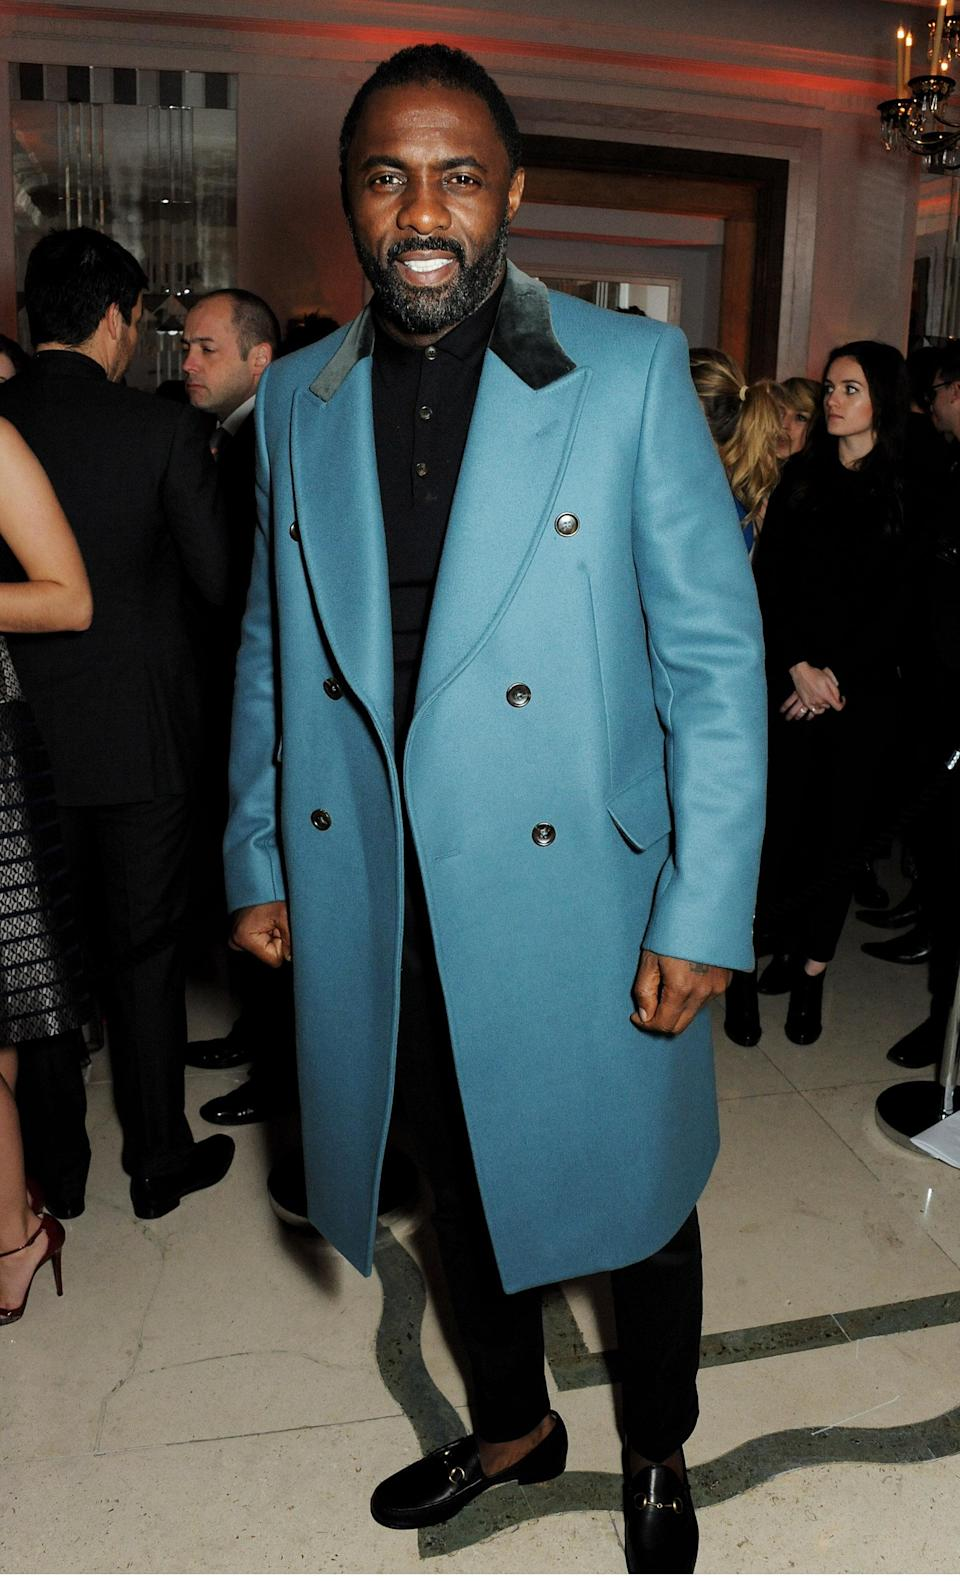 <p>Idris Elba arrives at the Harper's Bazaar Women of the Year awards at Claridge's Hotel in London wearing a bright teal coat on Nov. 5, 2013. (Photo: Getty Images) </p>